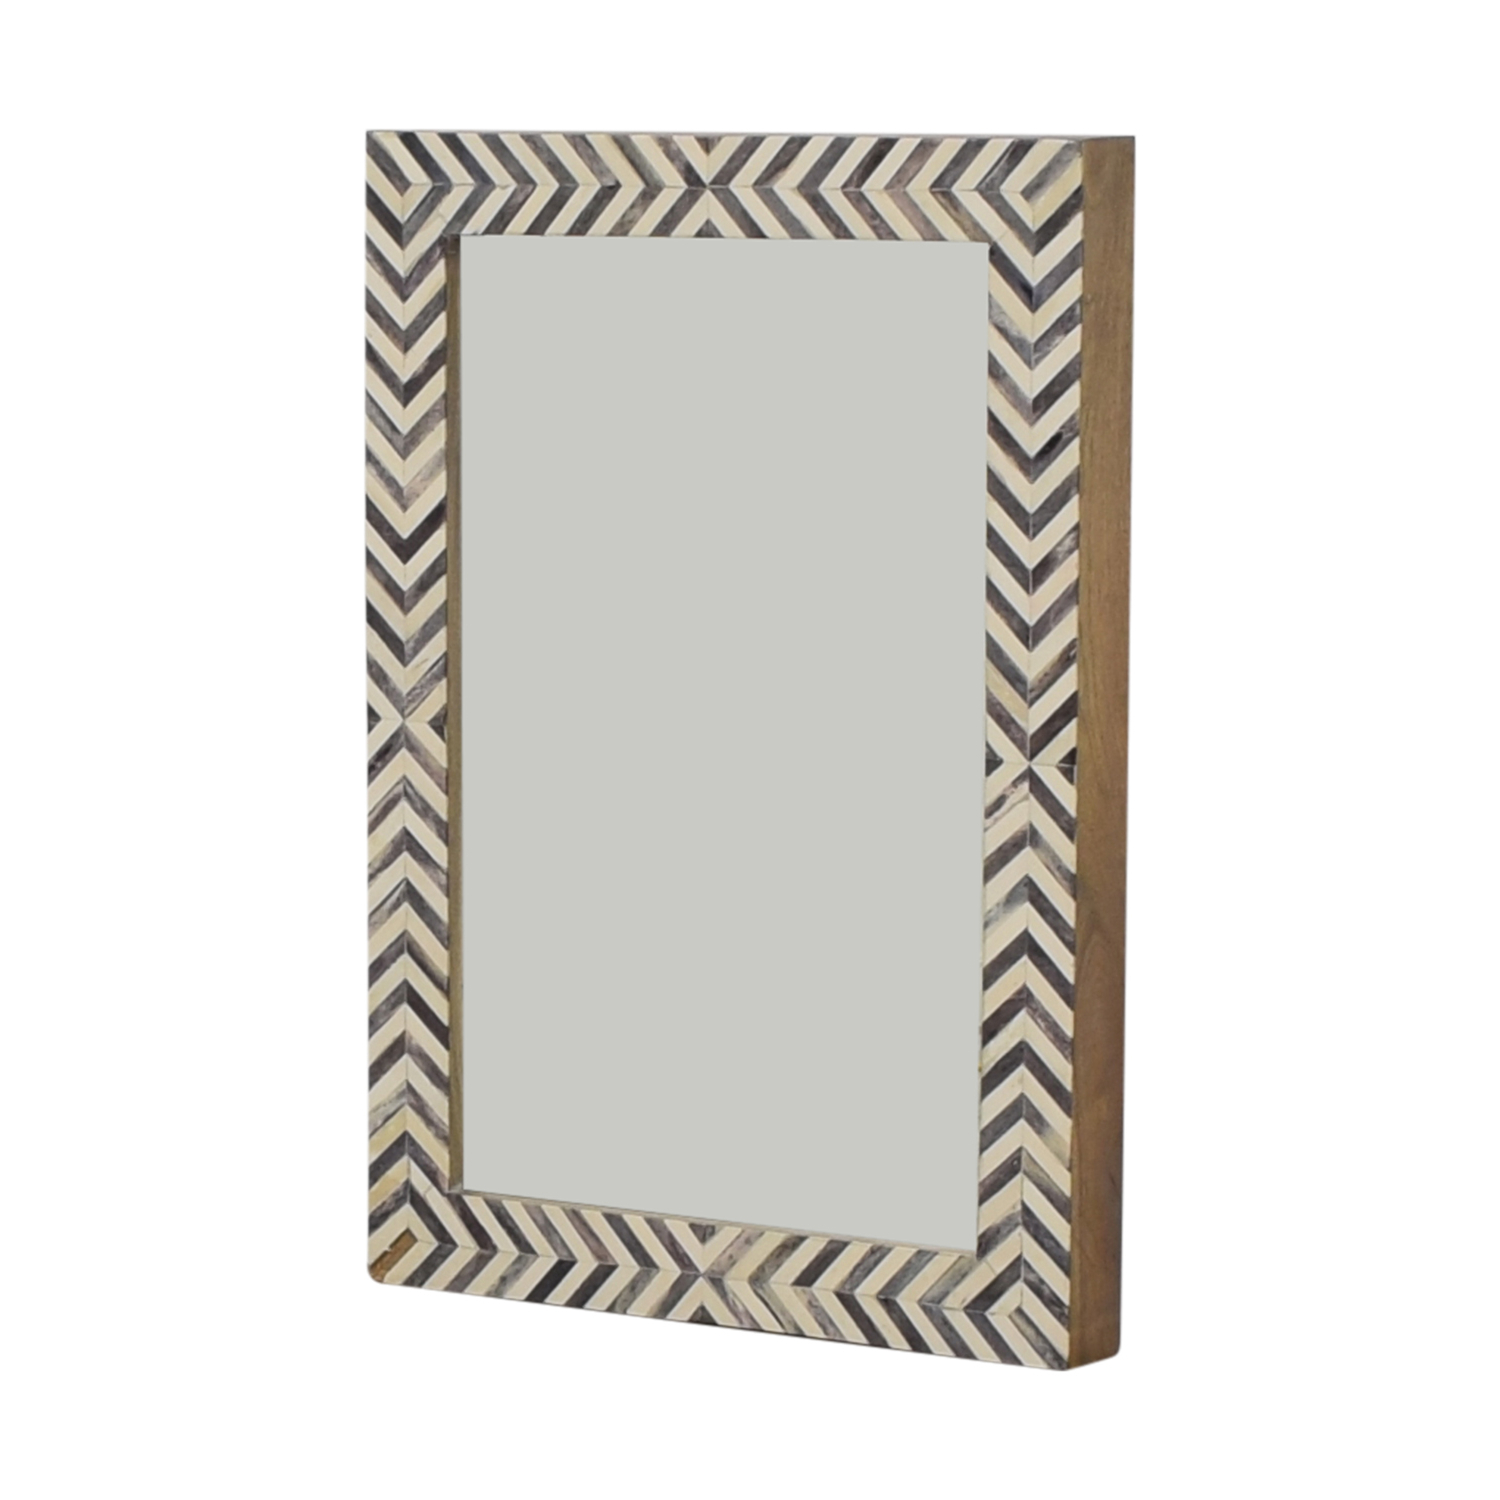 [%51% Off – West Elm West Elm Parsons Gray Herringbone Wall Mirror / Decor For Well Known West Elm Wall Mirrors|west Elm Wall Mirrors In Most Recently Released 51% Off – West Elm West Elm Parsons Gray Herringbone Wall Mirror / Decor|fashionable West Elm Wall Mirrors Pertaining To 51% Off – West Elm West Elm Parsons Gray Herringbone Wall Mirror / Decor|best And Newest 51% Off – West Elm West Elm Parsons Gray Herringbone Wall Mirror / Decor Regarding West Elm Wall Mirrors%] (View 2 of 20)